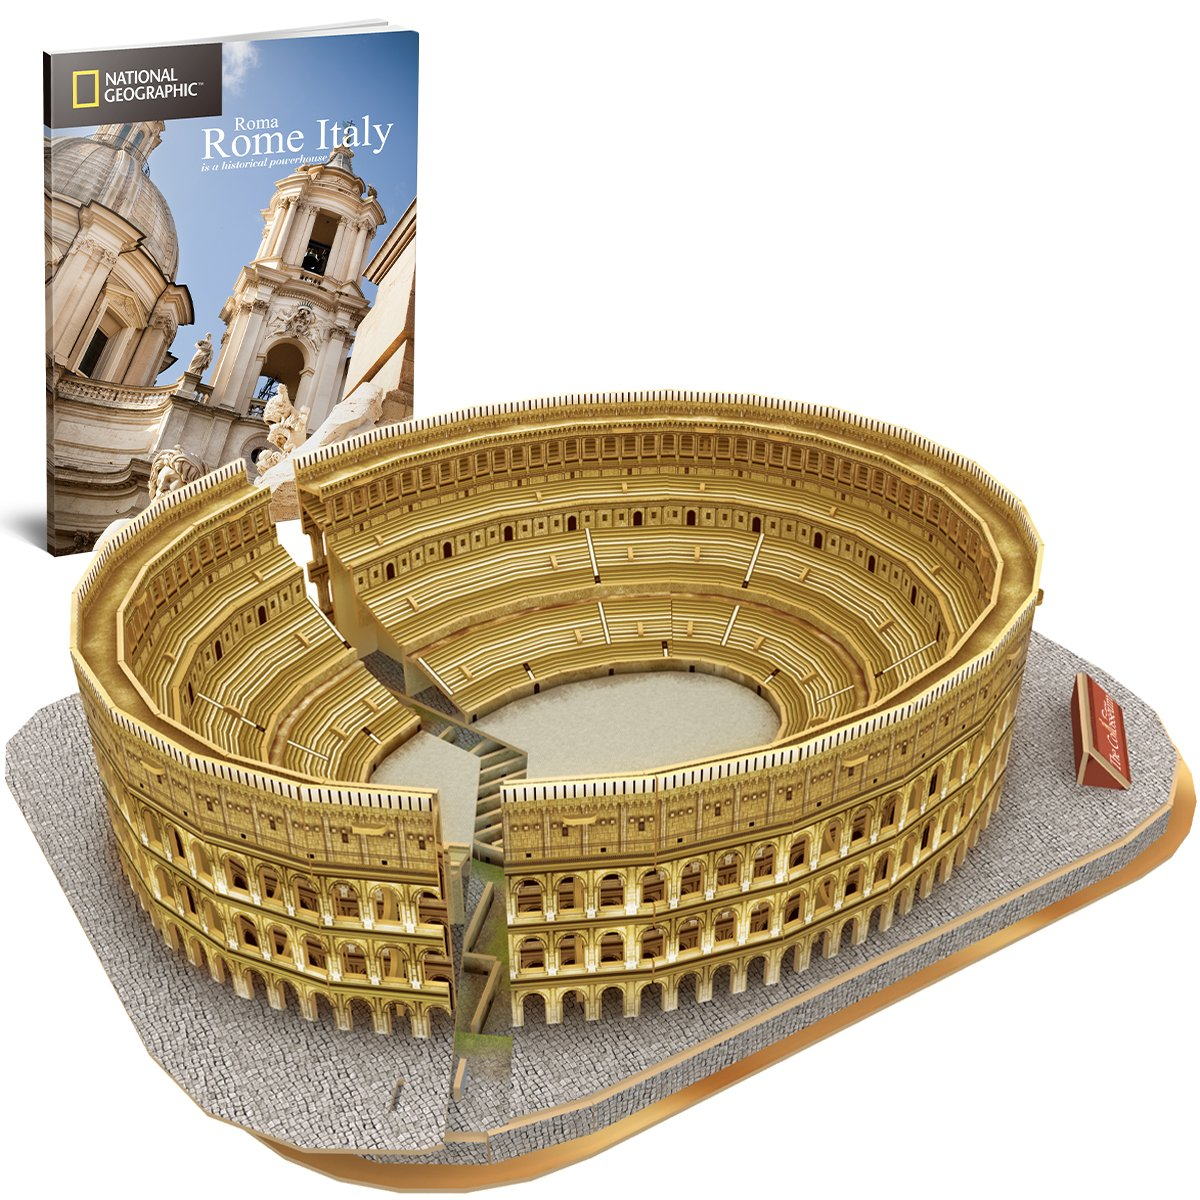 CubicFun National Geographic 3D Puzzles Italy Rome Colosseum Architecture Model Kits Toys for Adults and Children with a Booklet